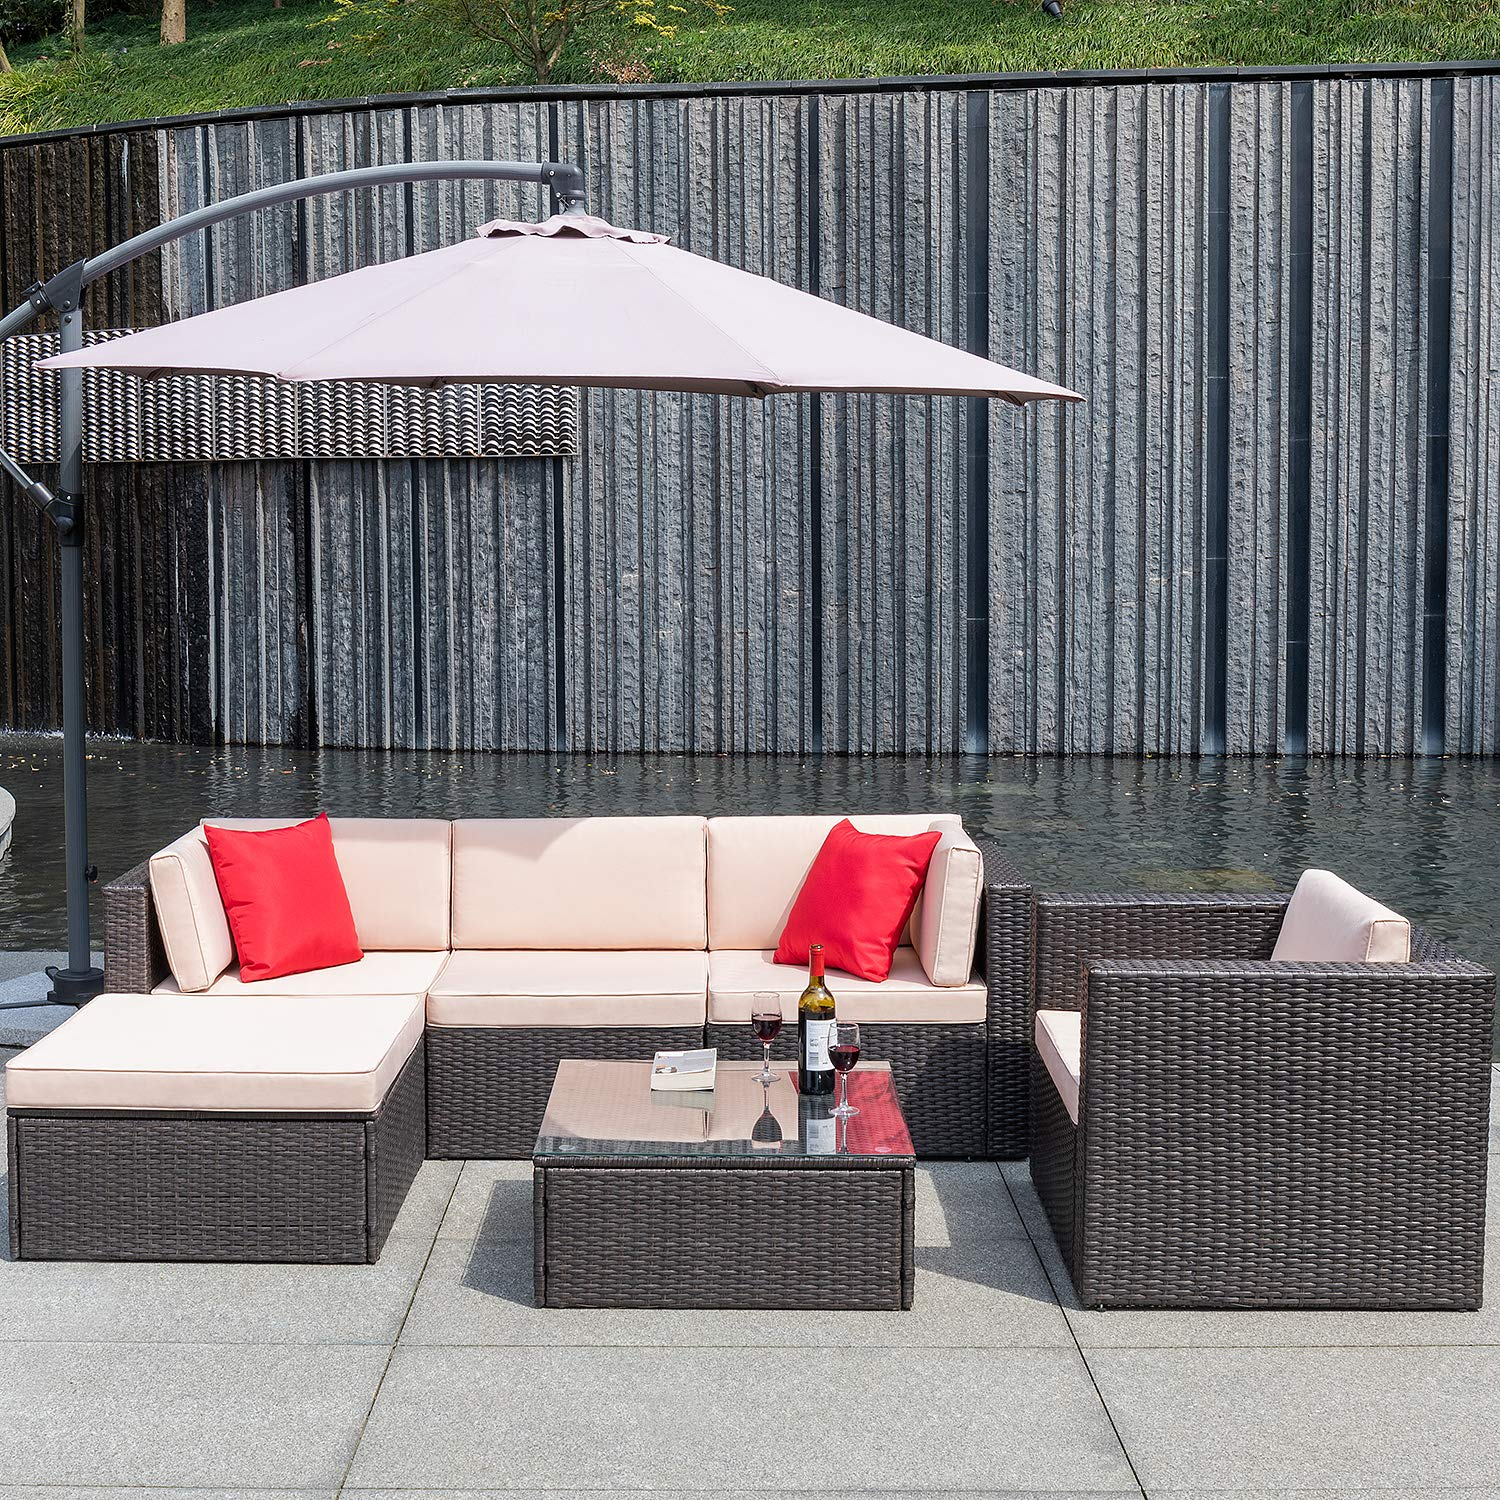 Flamaker 6 Pieces Patio Furniture Set Outdoor Sectional Sofa Outdoor Furniture Set Patio Sofa Set Conversation Set with Cushion and Table (Beige) by Flamaker